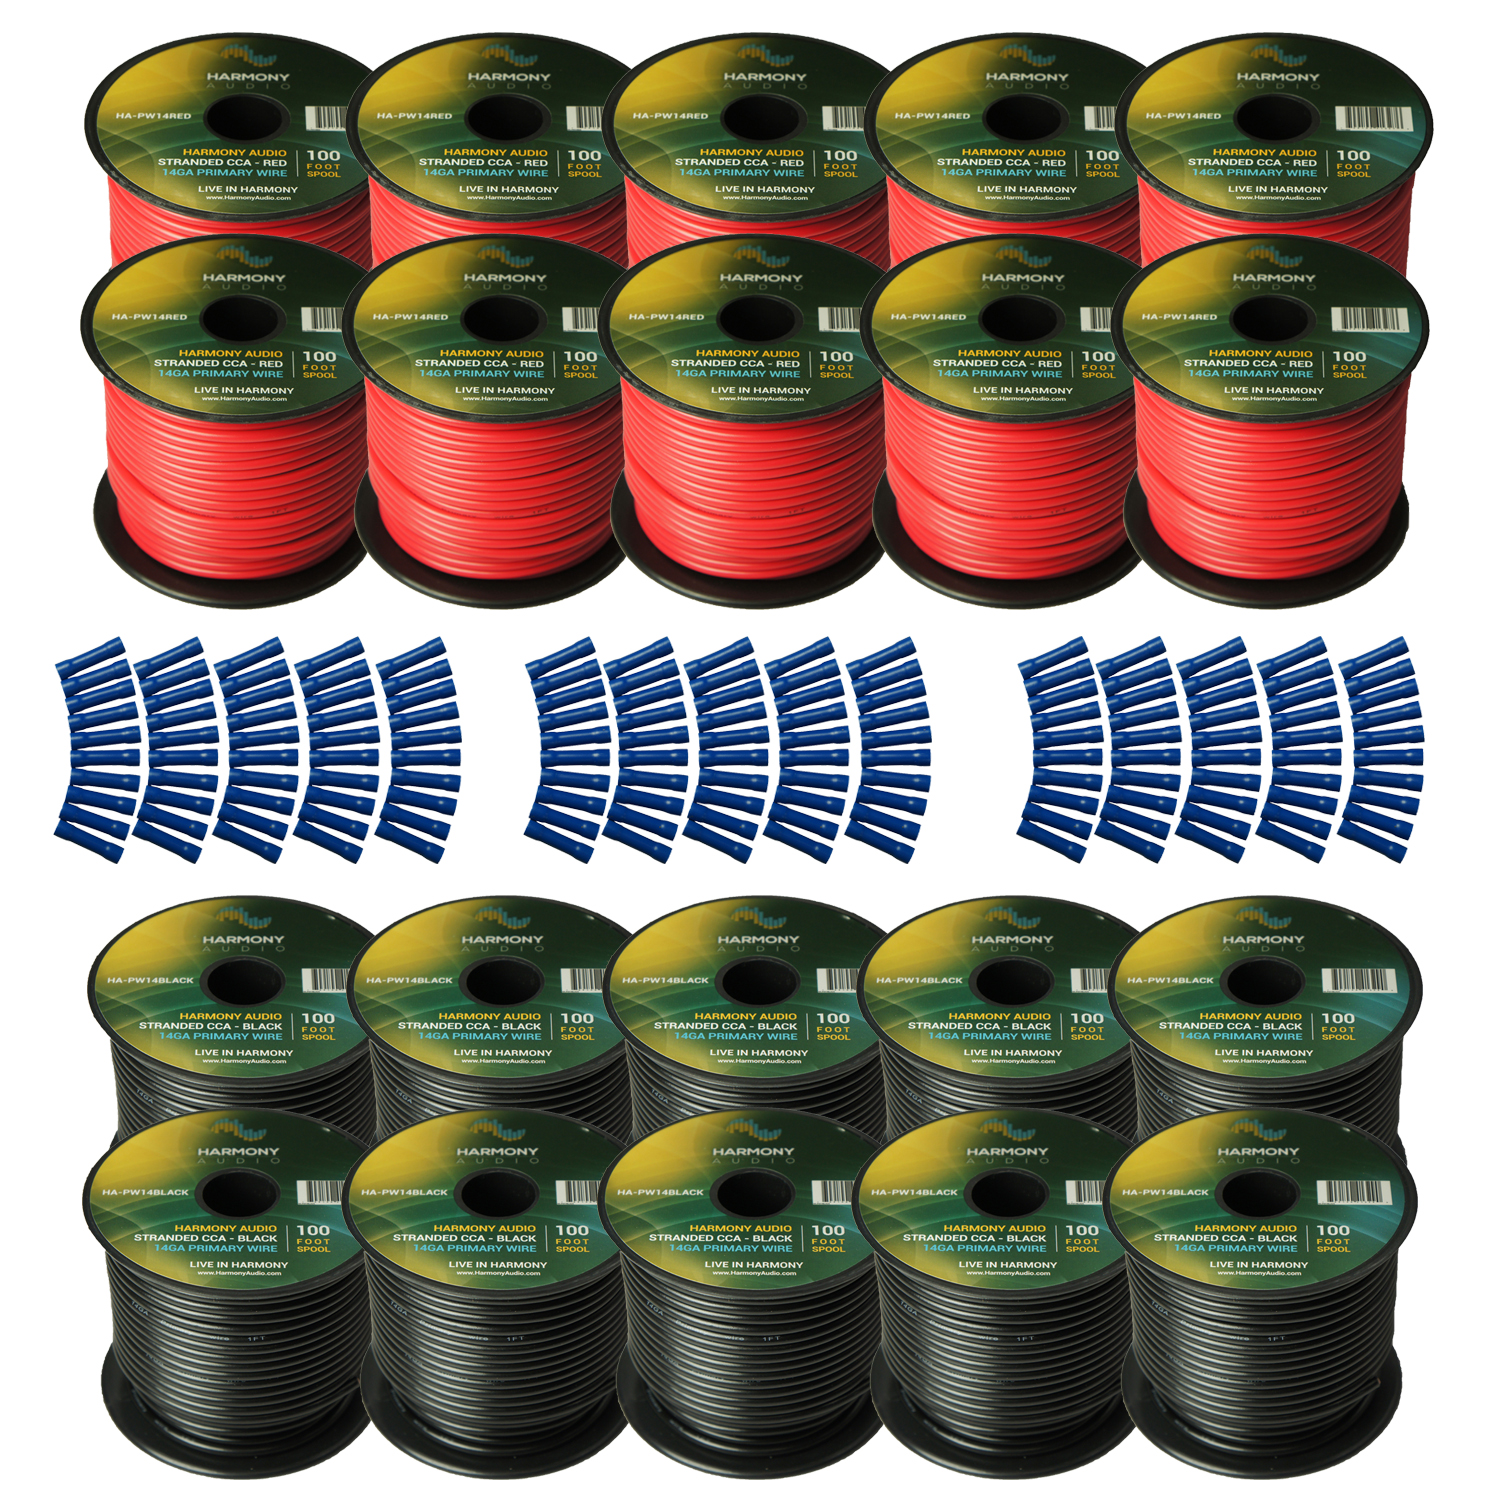 Harmony Audio Primary Single Conductor 14 Gauge Power or Ground Wire - 20 Rolls - 2000 Feet - Red & Black for Car Audio / Trailer / Model Train / Remote